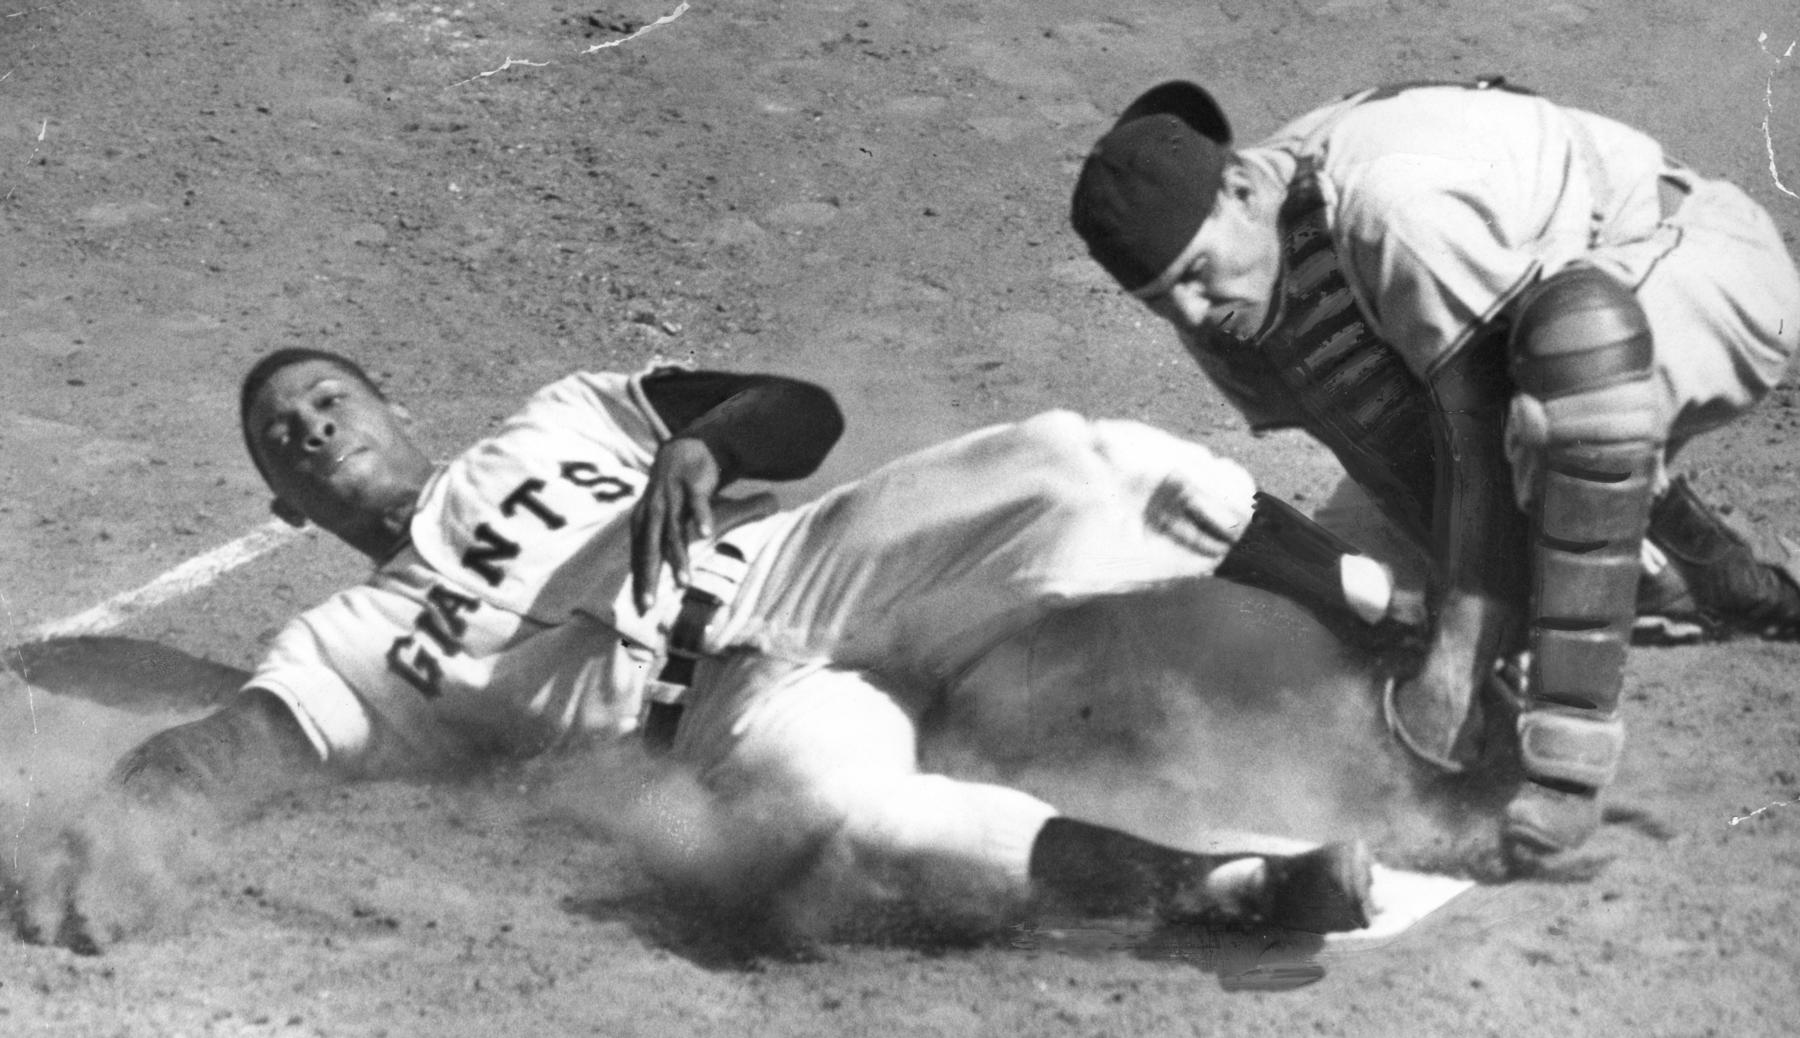 Willie Mays tagged out sliding into home plate, 1954. BL-4158.68HT1b (National Baseball Hall of Fame Library)